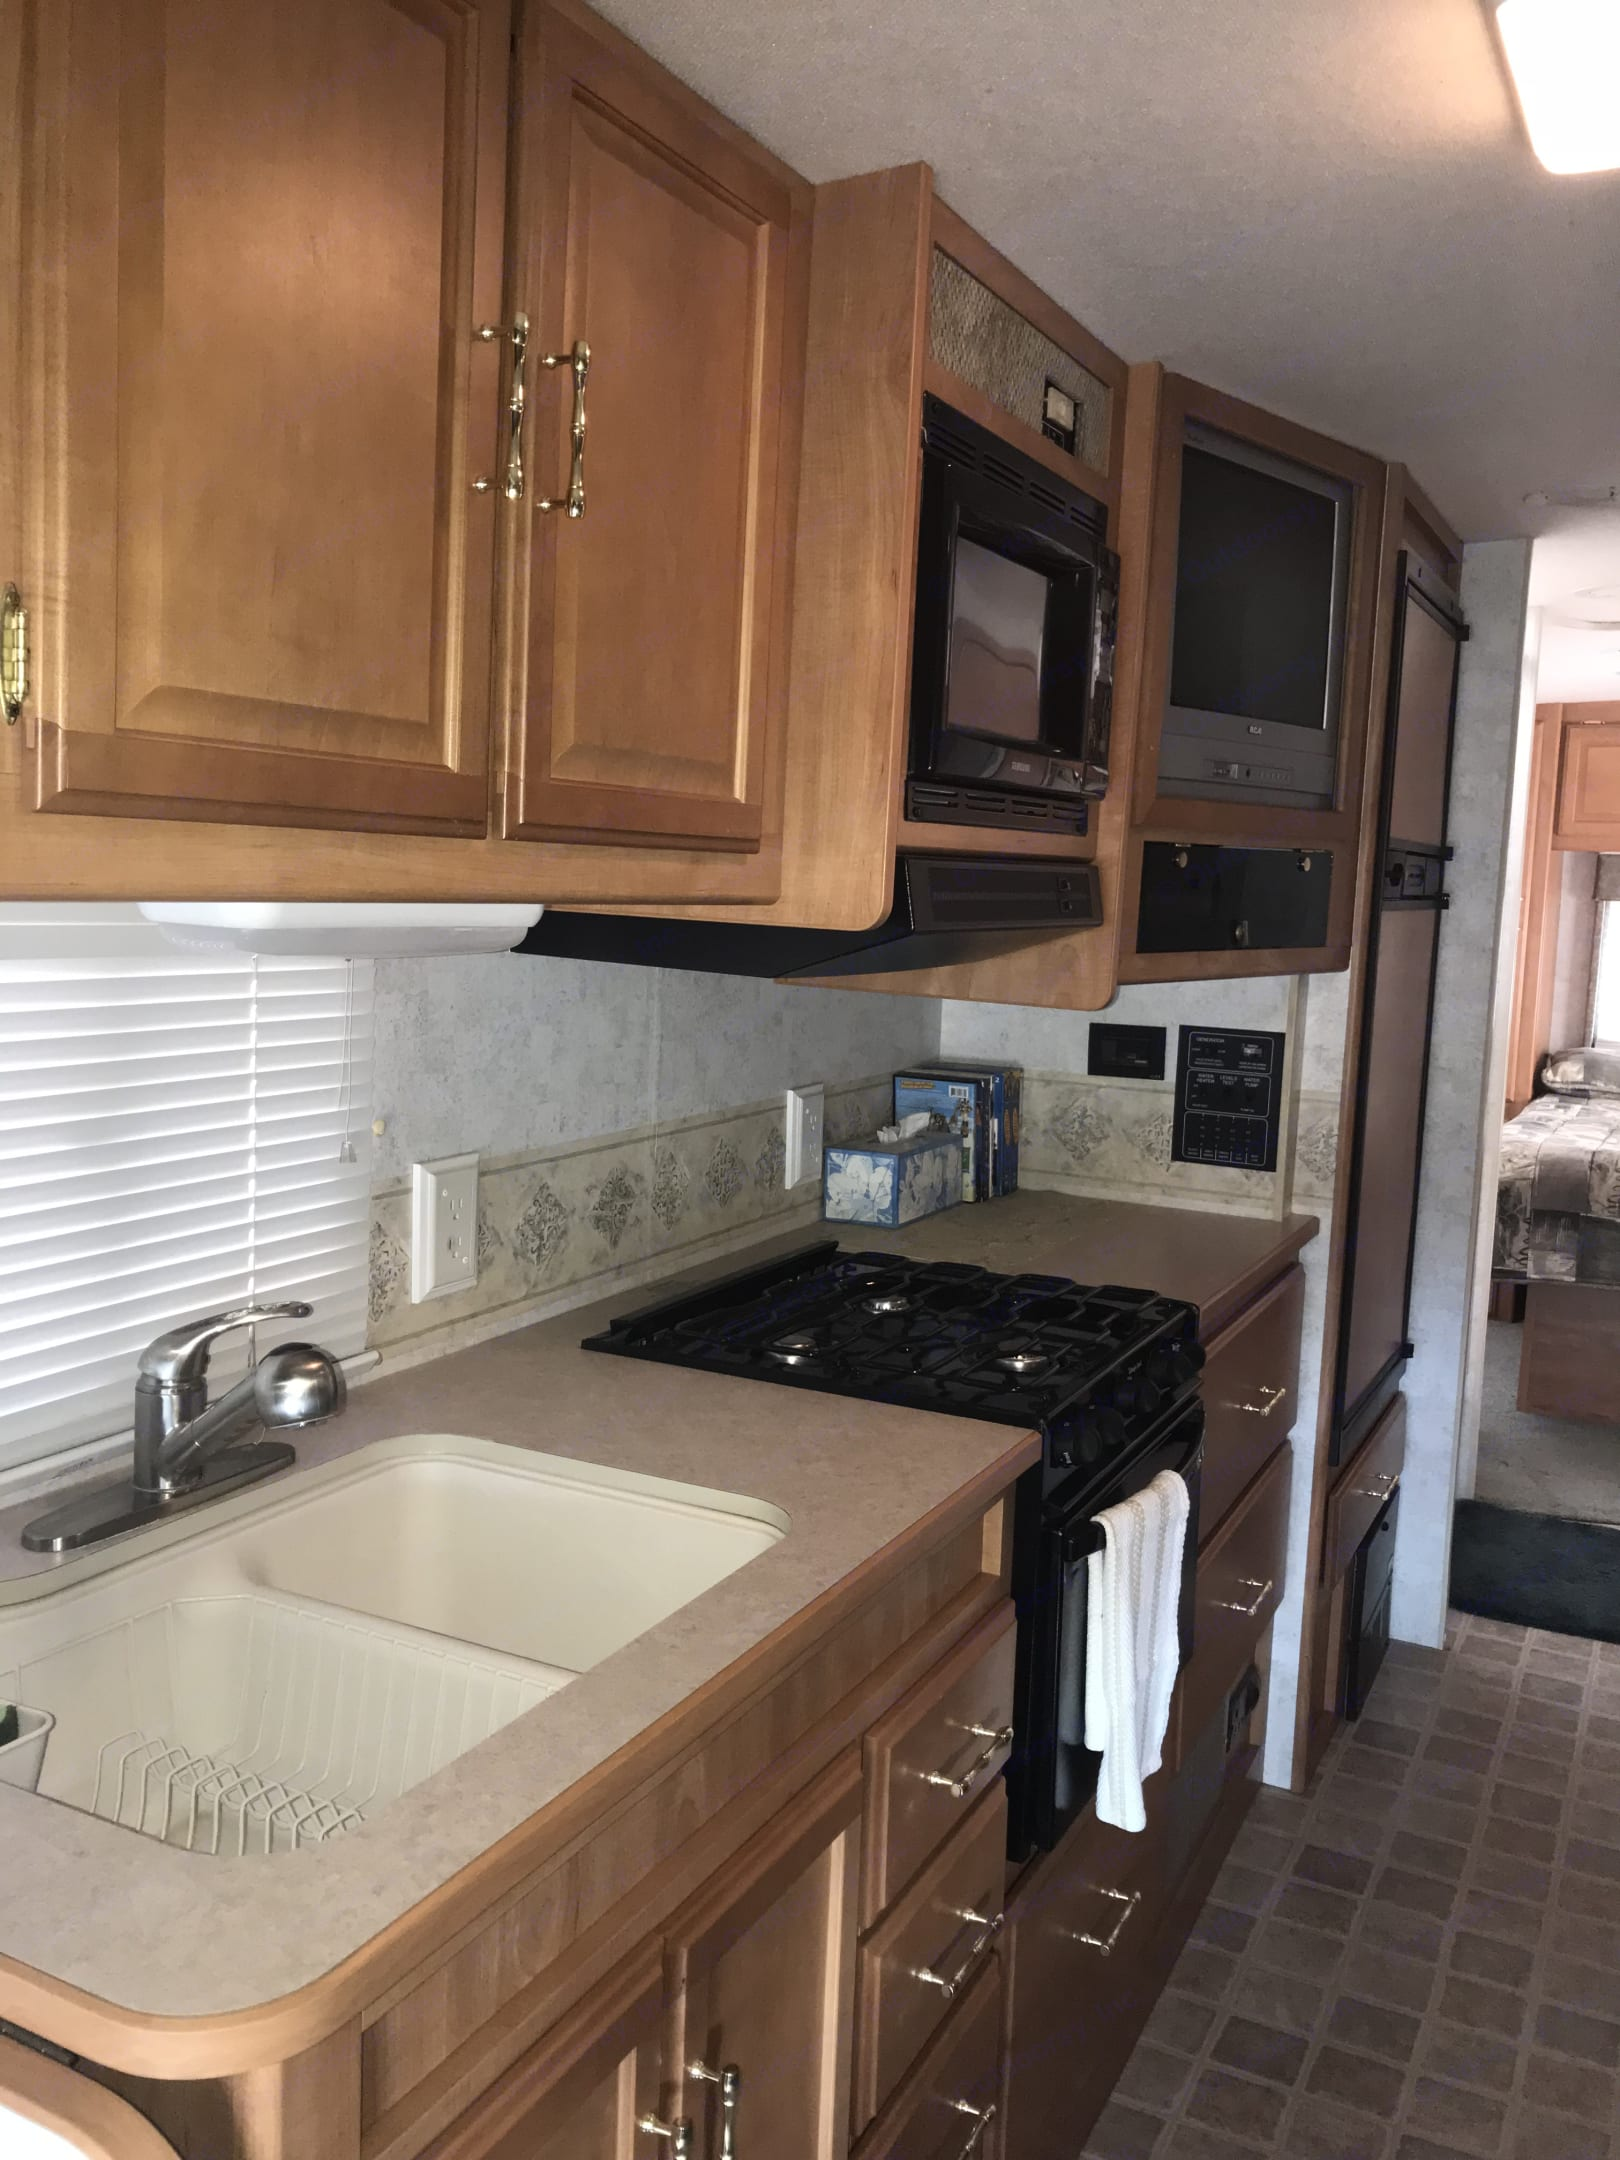 Kitchen area complete with microwave, stove top and oven.  Comes equipped with all cooking supplies.. Winnebago Minnie Winnie 2005